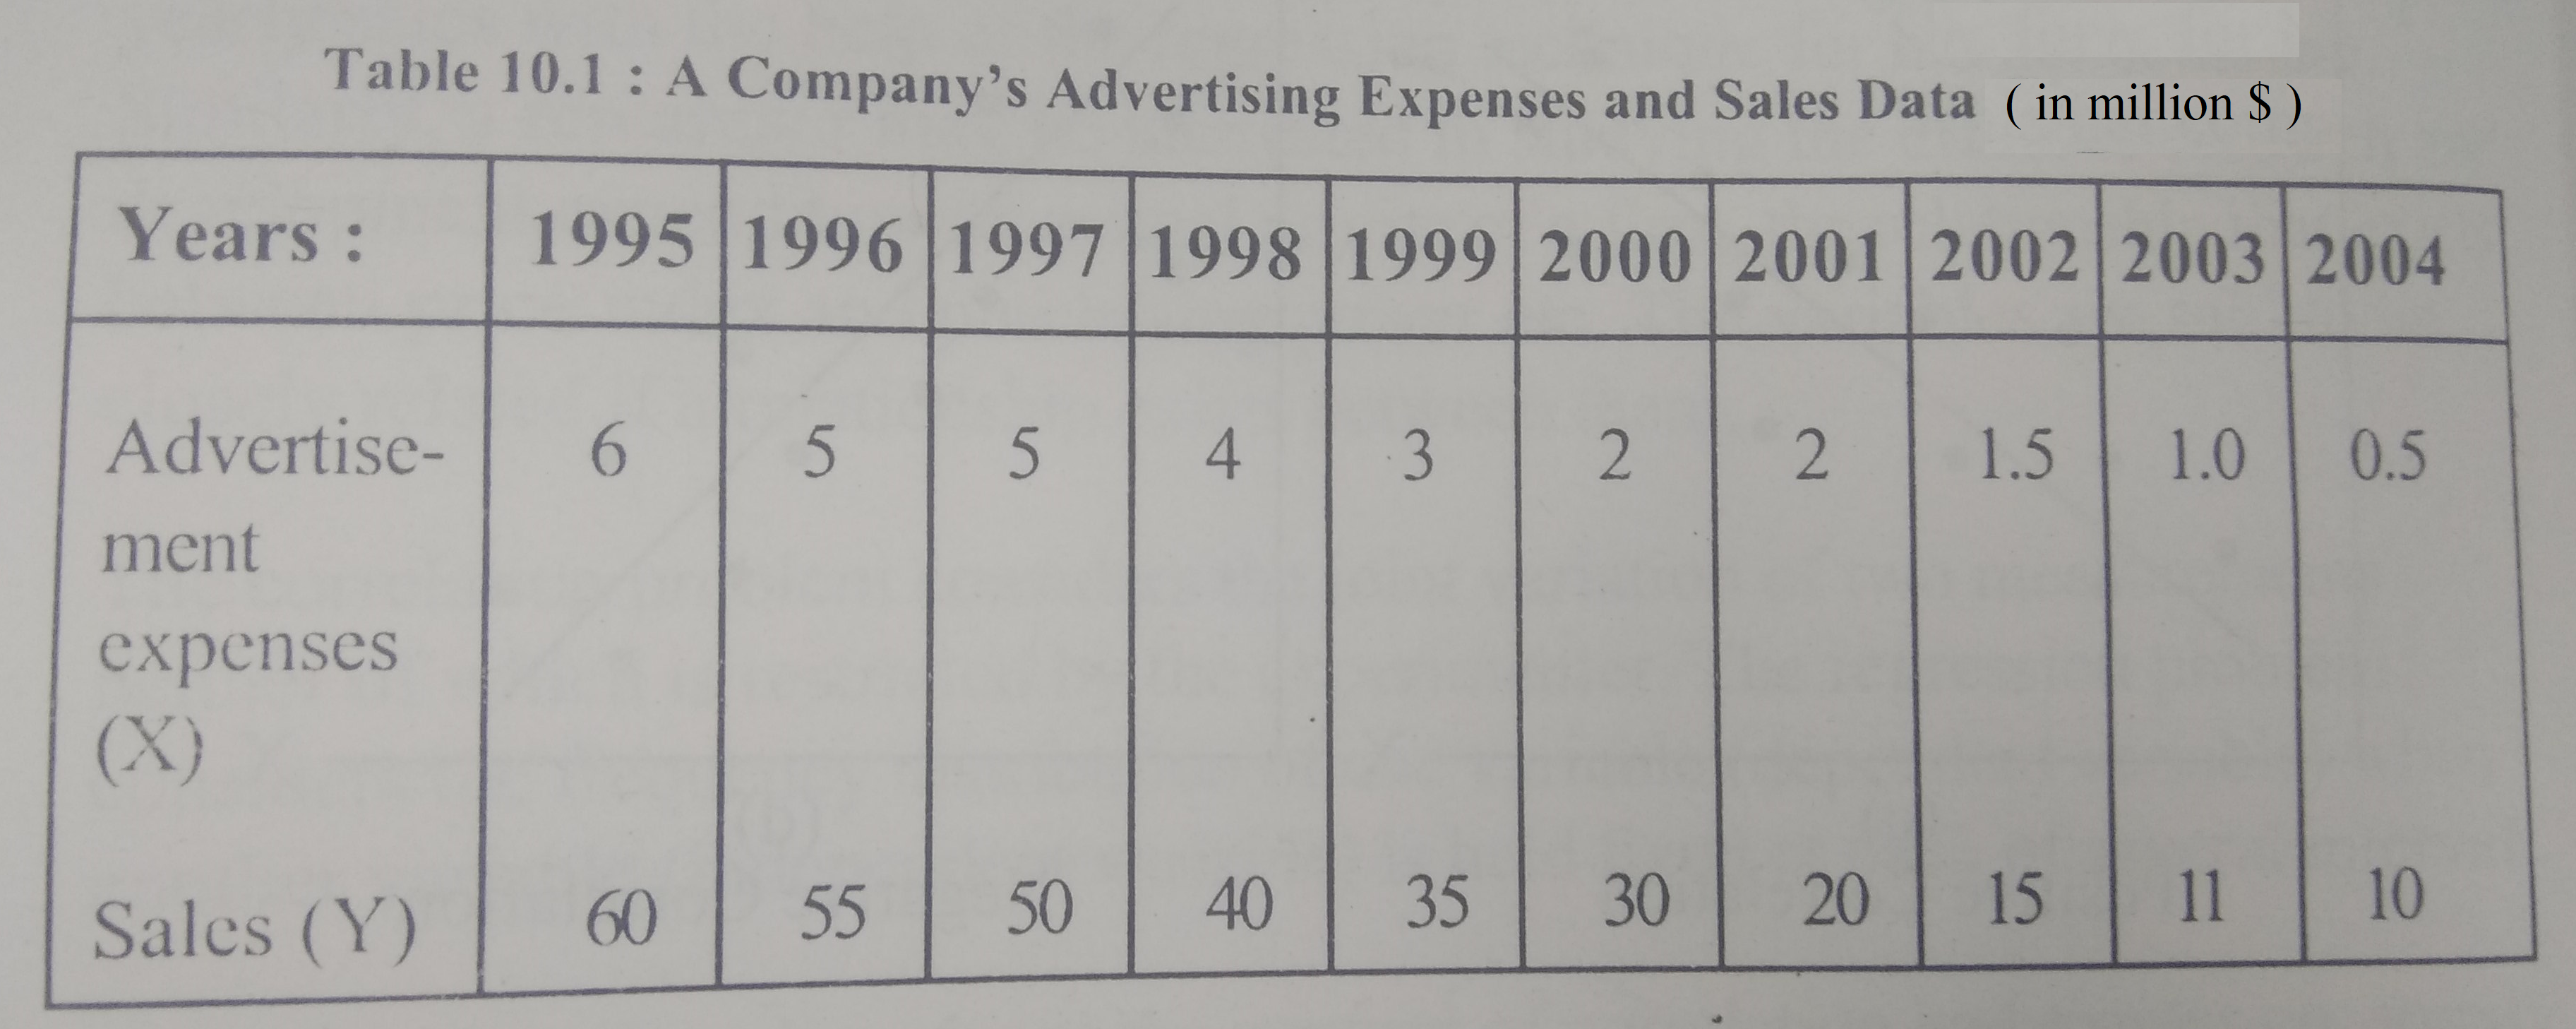 Table 10.1 : A Company's Advertising Expenses and Sales Data ( in million S) [Years- 1995|1996|1997|1998 1999|2000|2001|2002|20013|2004 Advertise 6 5 5 4 3 2 2 1.5 1.0 0.5 ment expenses Sales (Y) 60 5 50 40 35 30 20 15 11 10